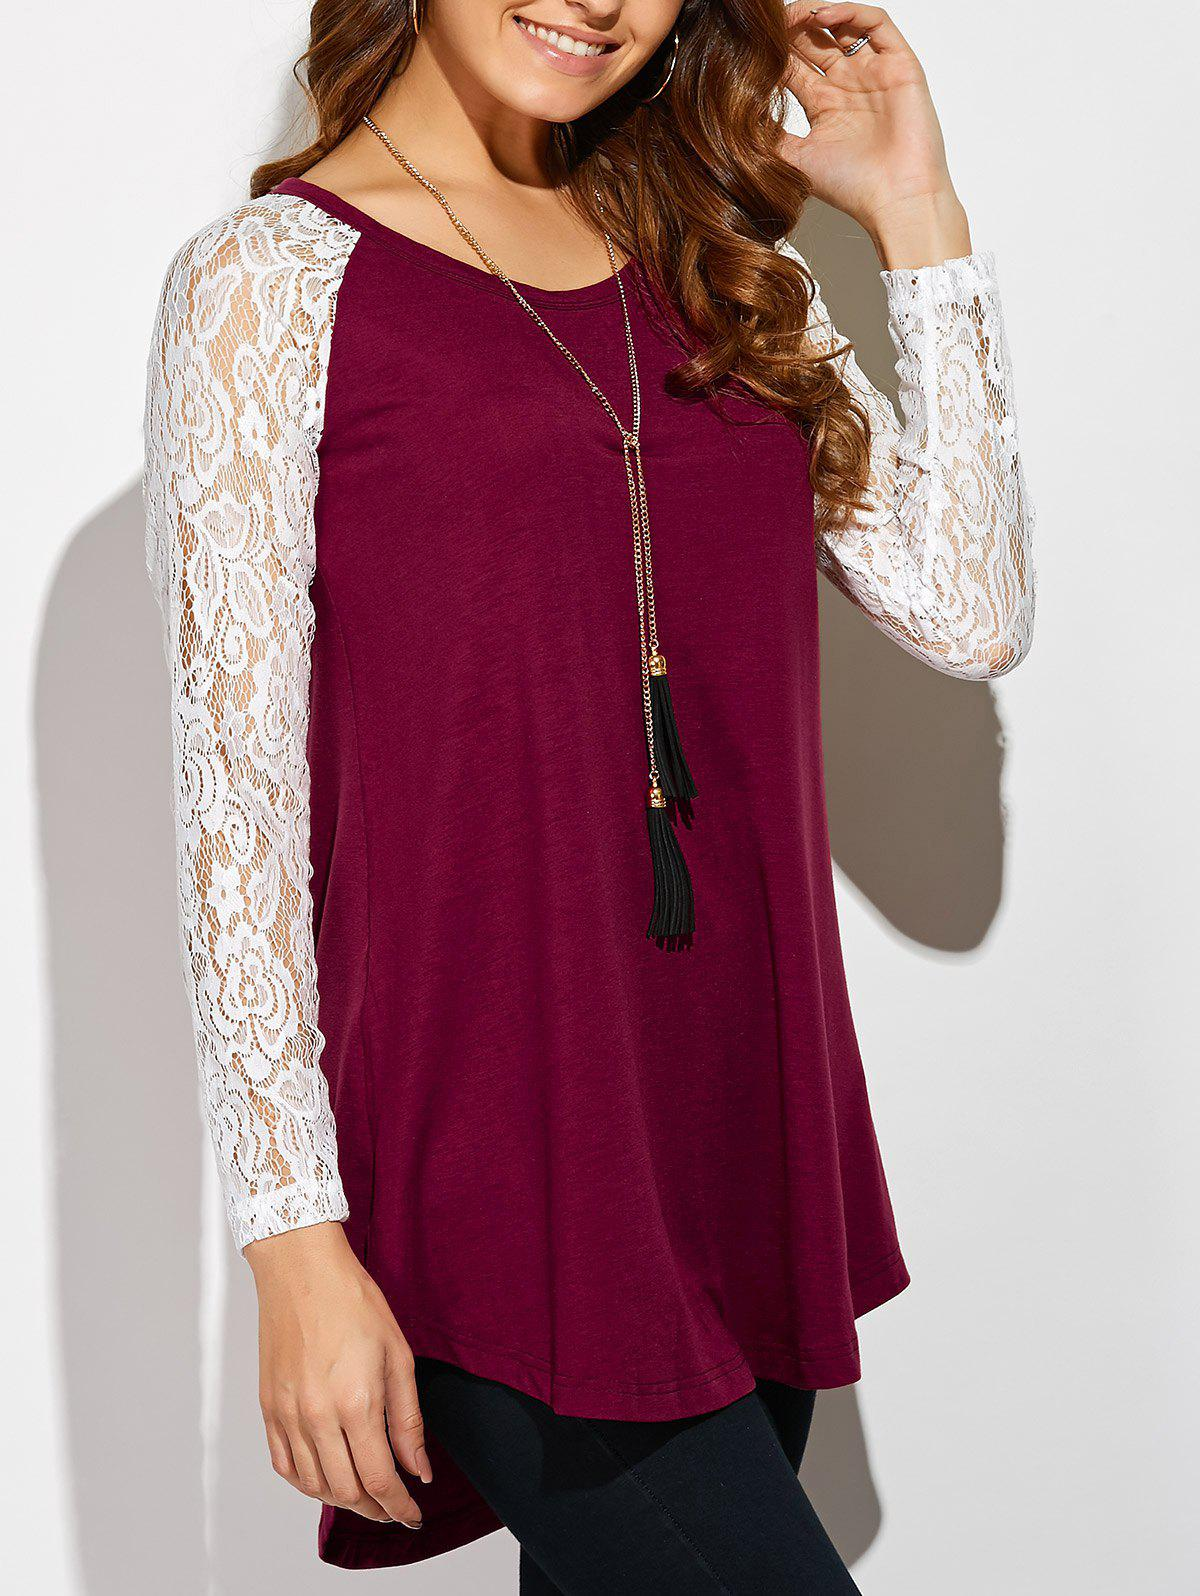 Lace Sleeve High Low Hem T-Shirt, Red with white